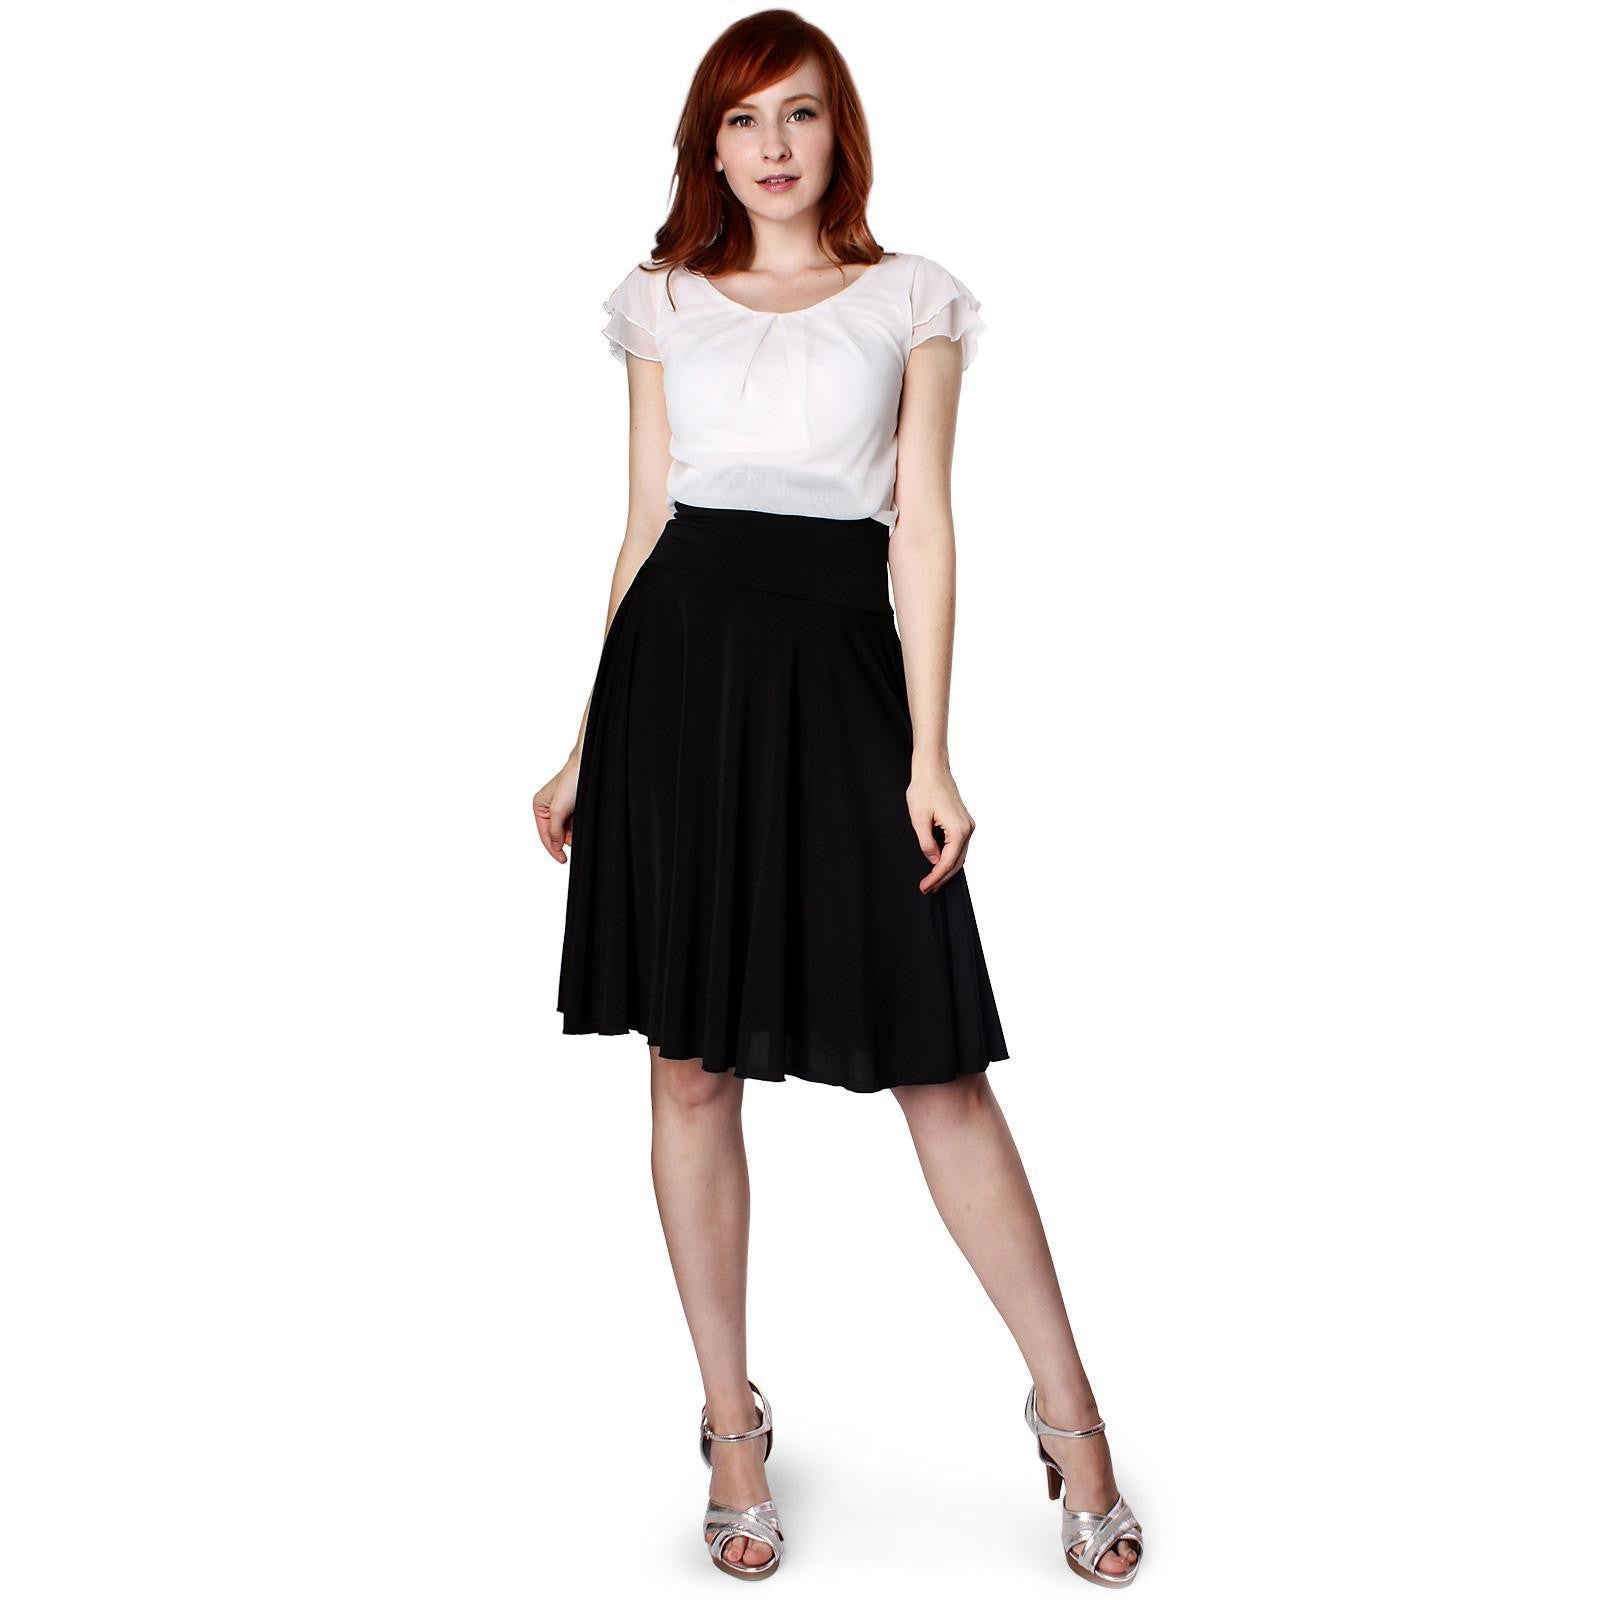 Evanese Women's Double Sleeves PleatTop and A Line Circle Skirt Cocktail Dress - ellemore.com